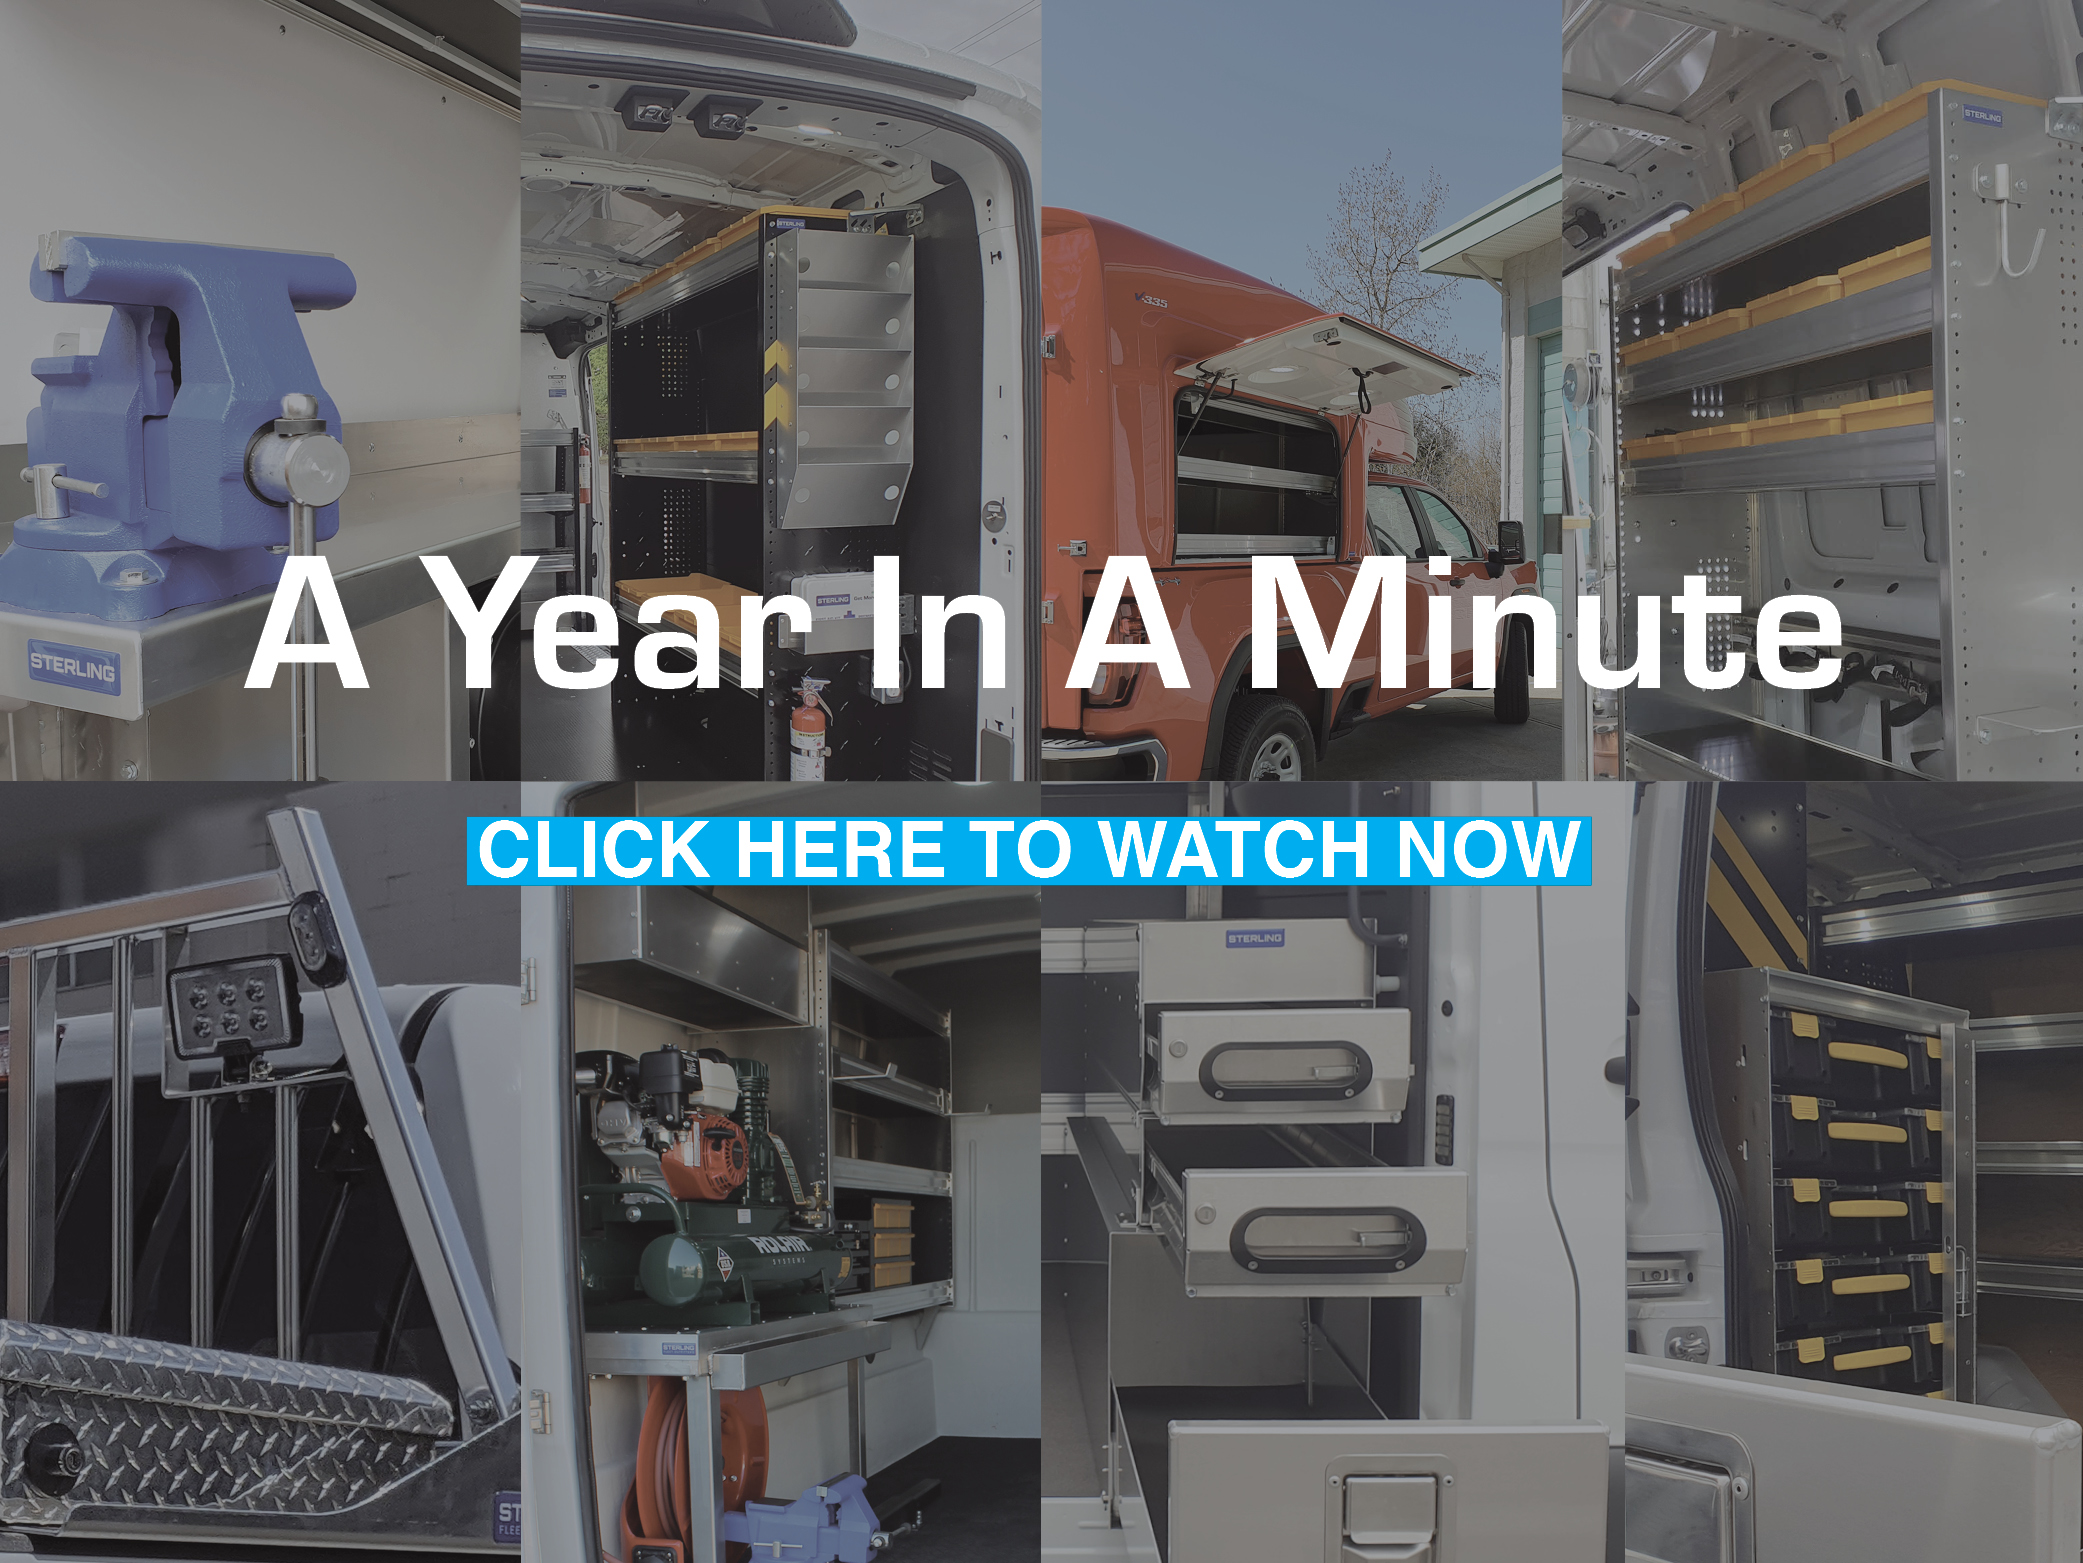 Take a look back - A Year In A Minute